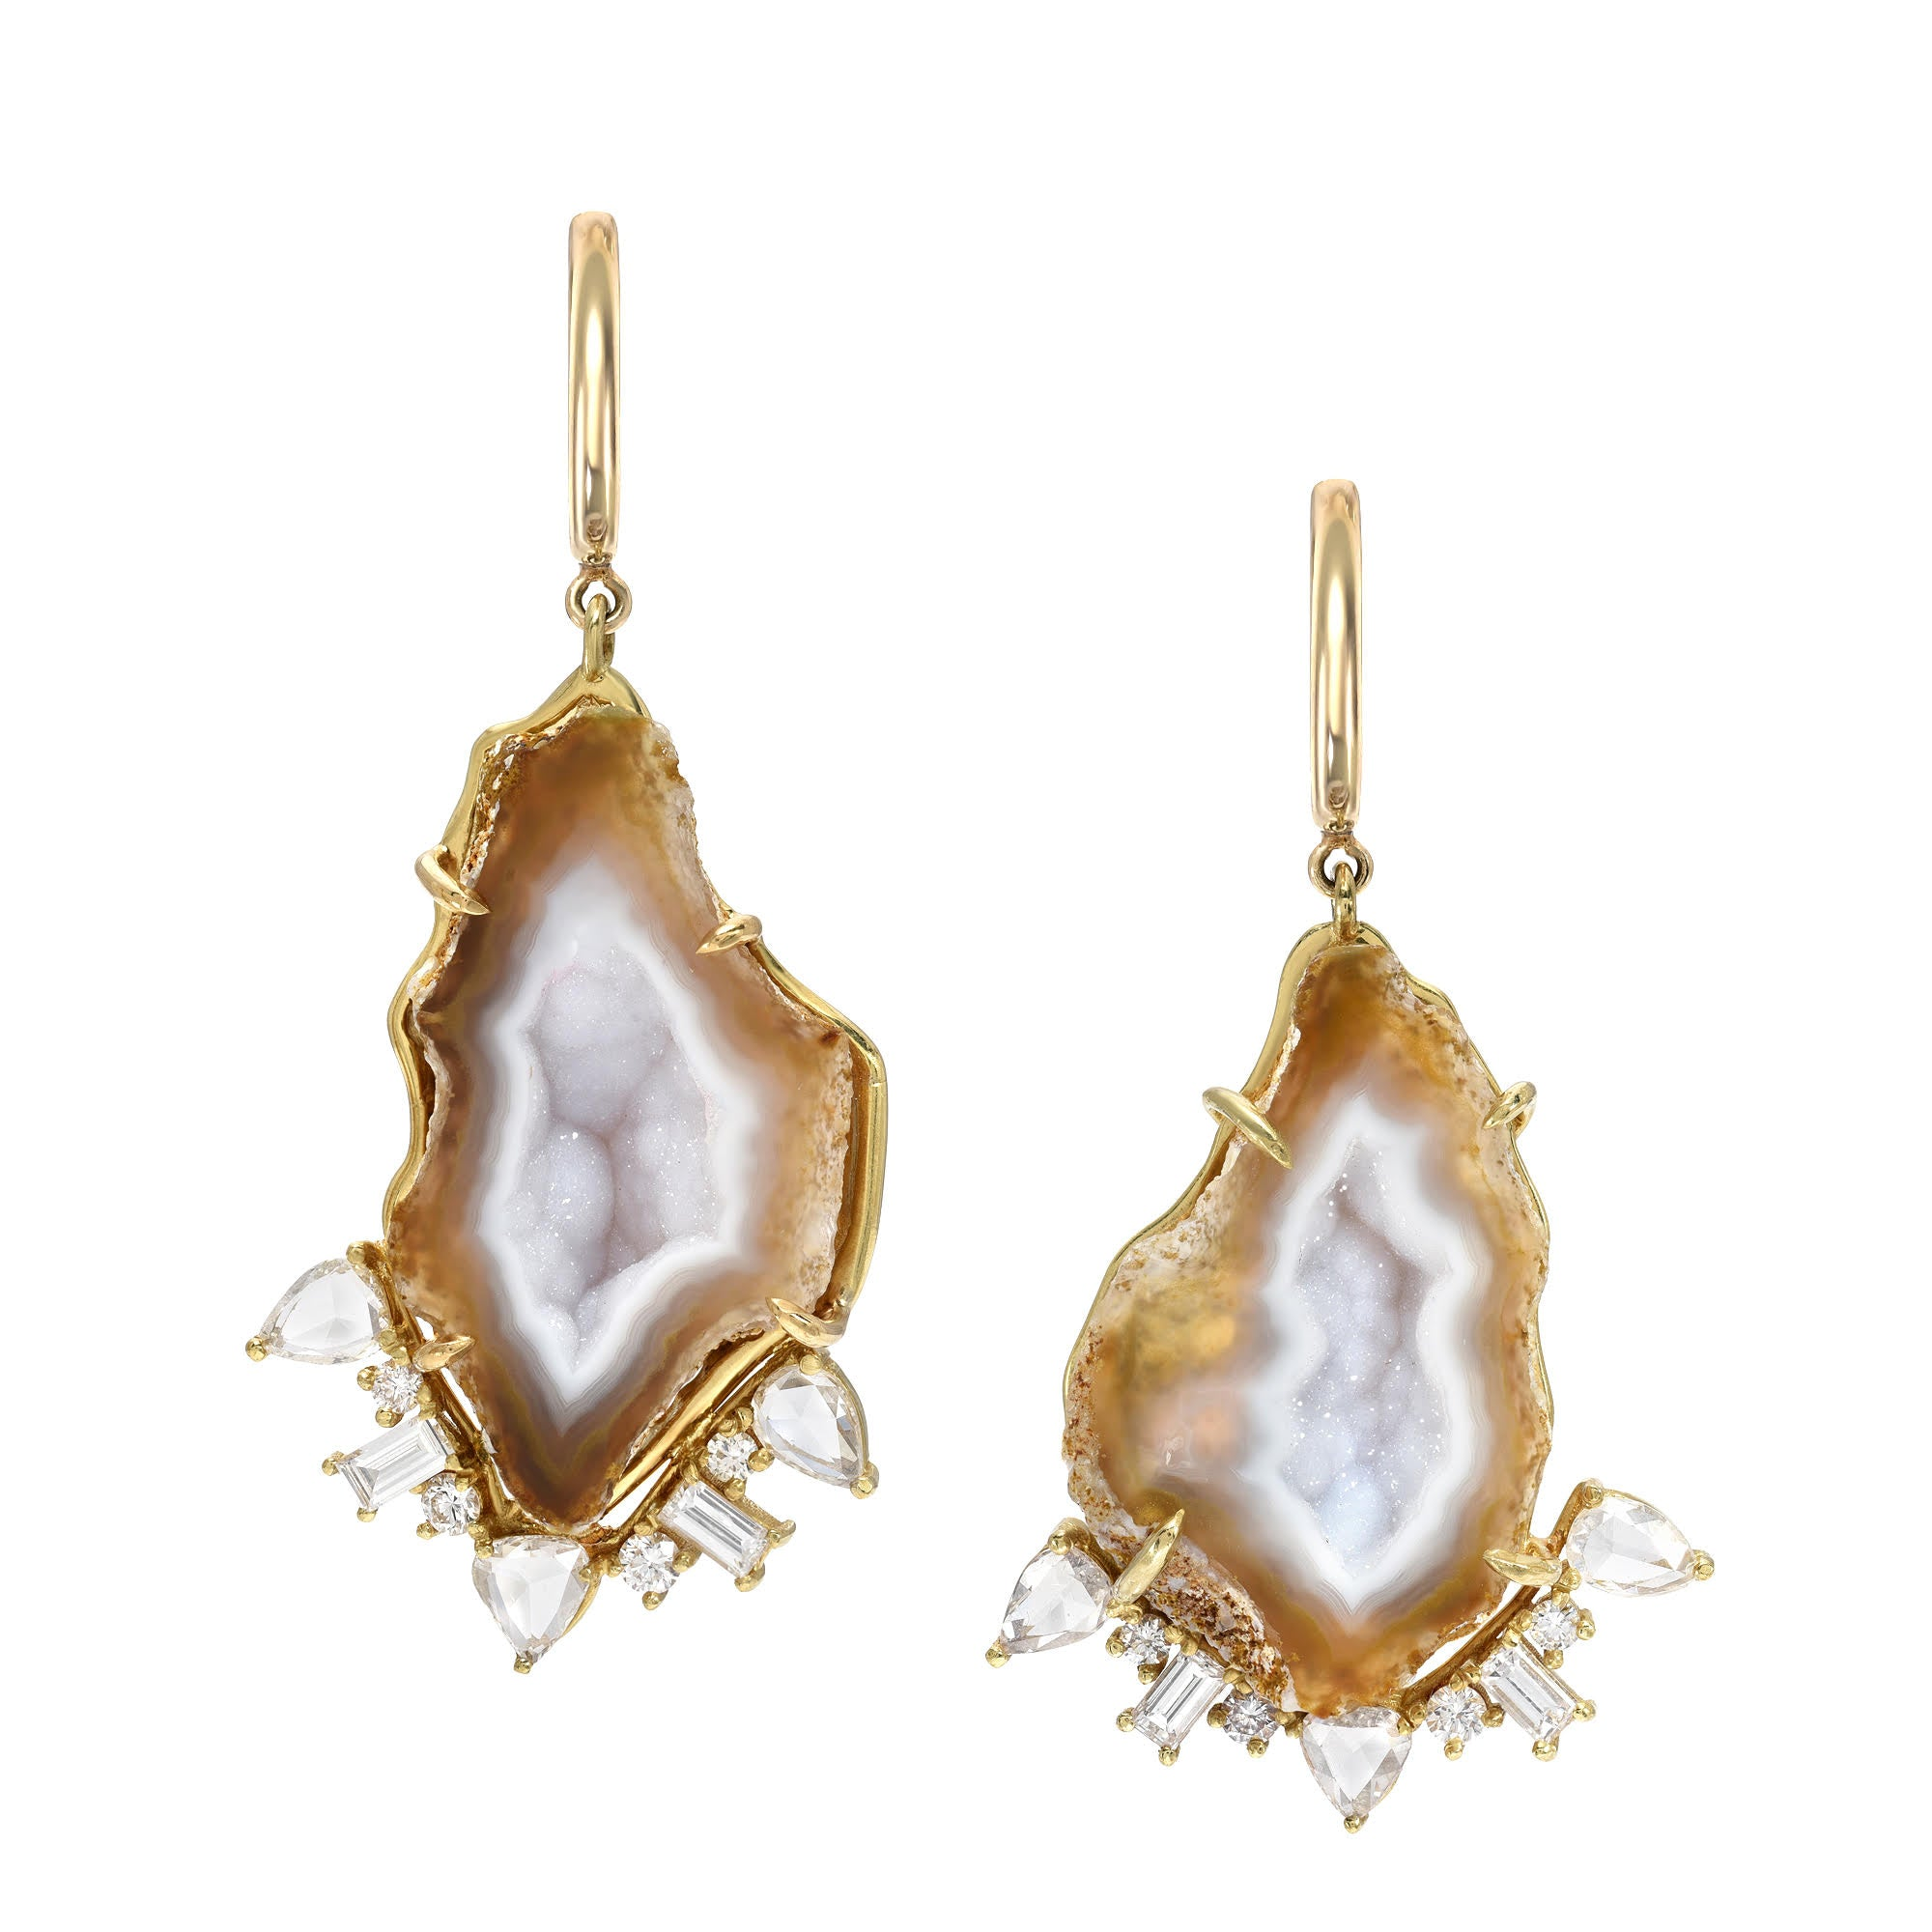 Geode Rosecut Diamond Earrings